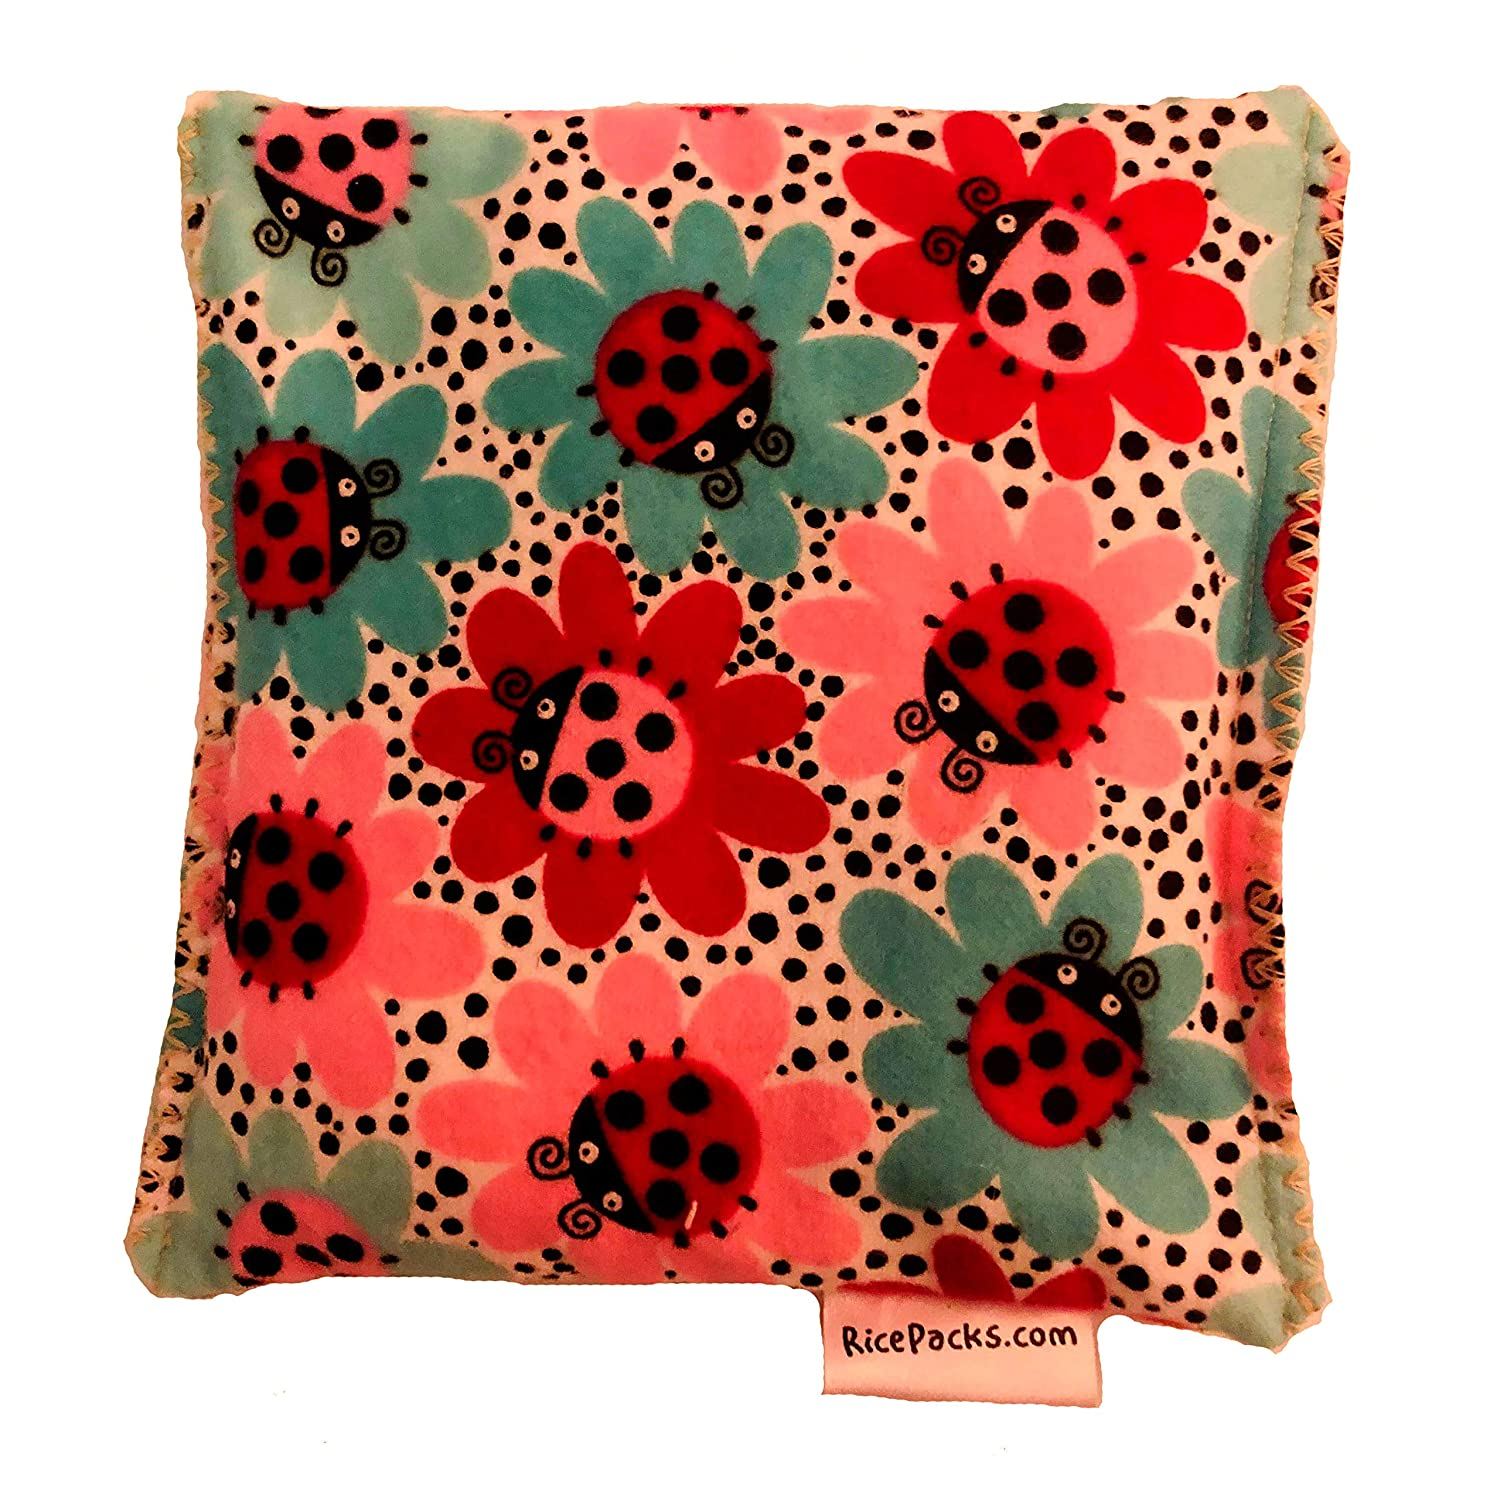 Ladybug Design 2packYou Pick Scent Hot and Cold Pack Reusable Microwaveable Rice Pack 5 inches by 5 inches Handmade reusable hot pads and reusable ice packs Hot Cold Pack Ideal Gift